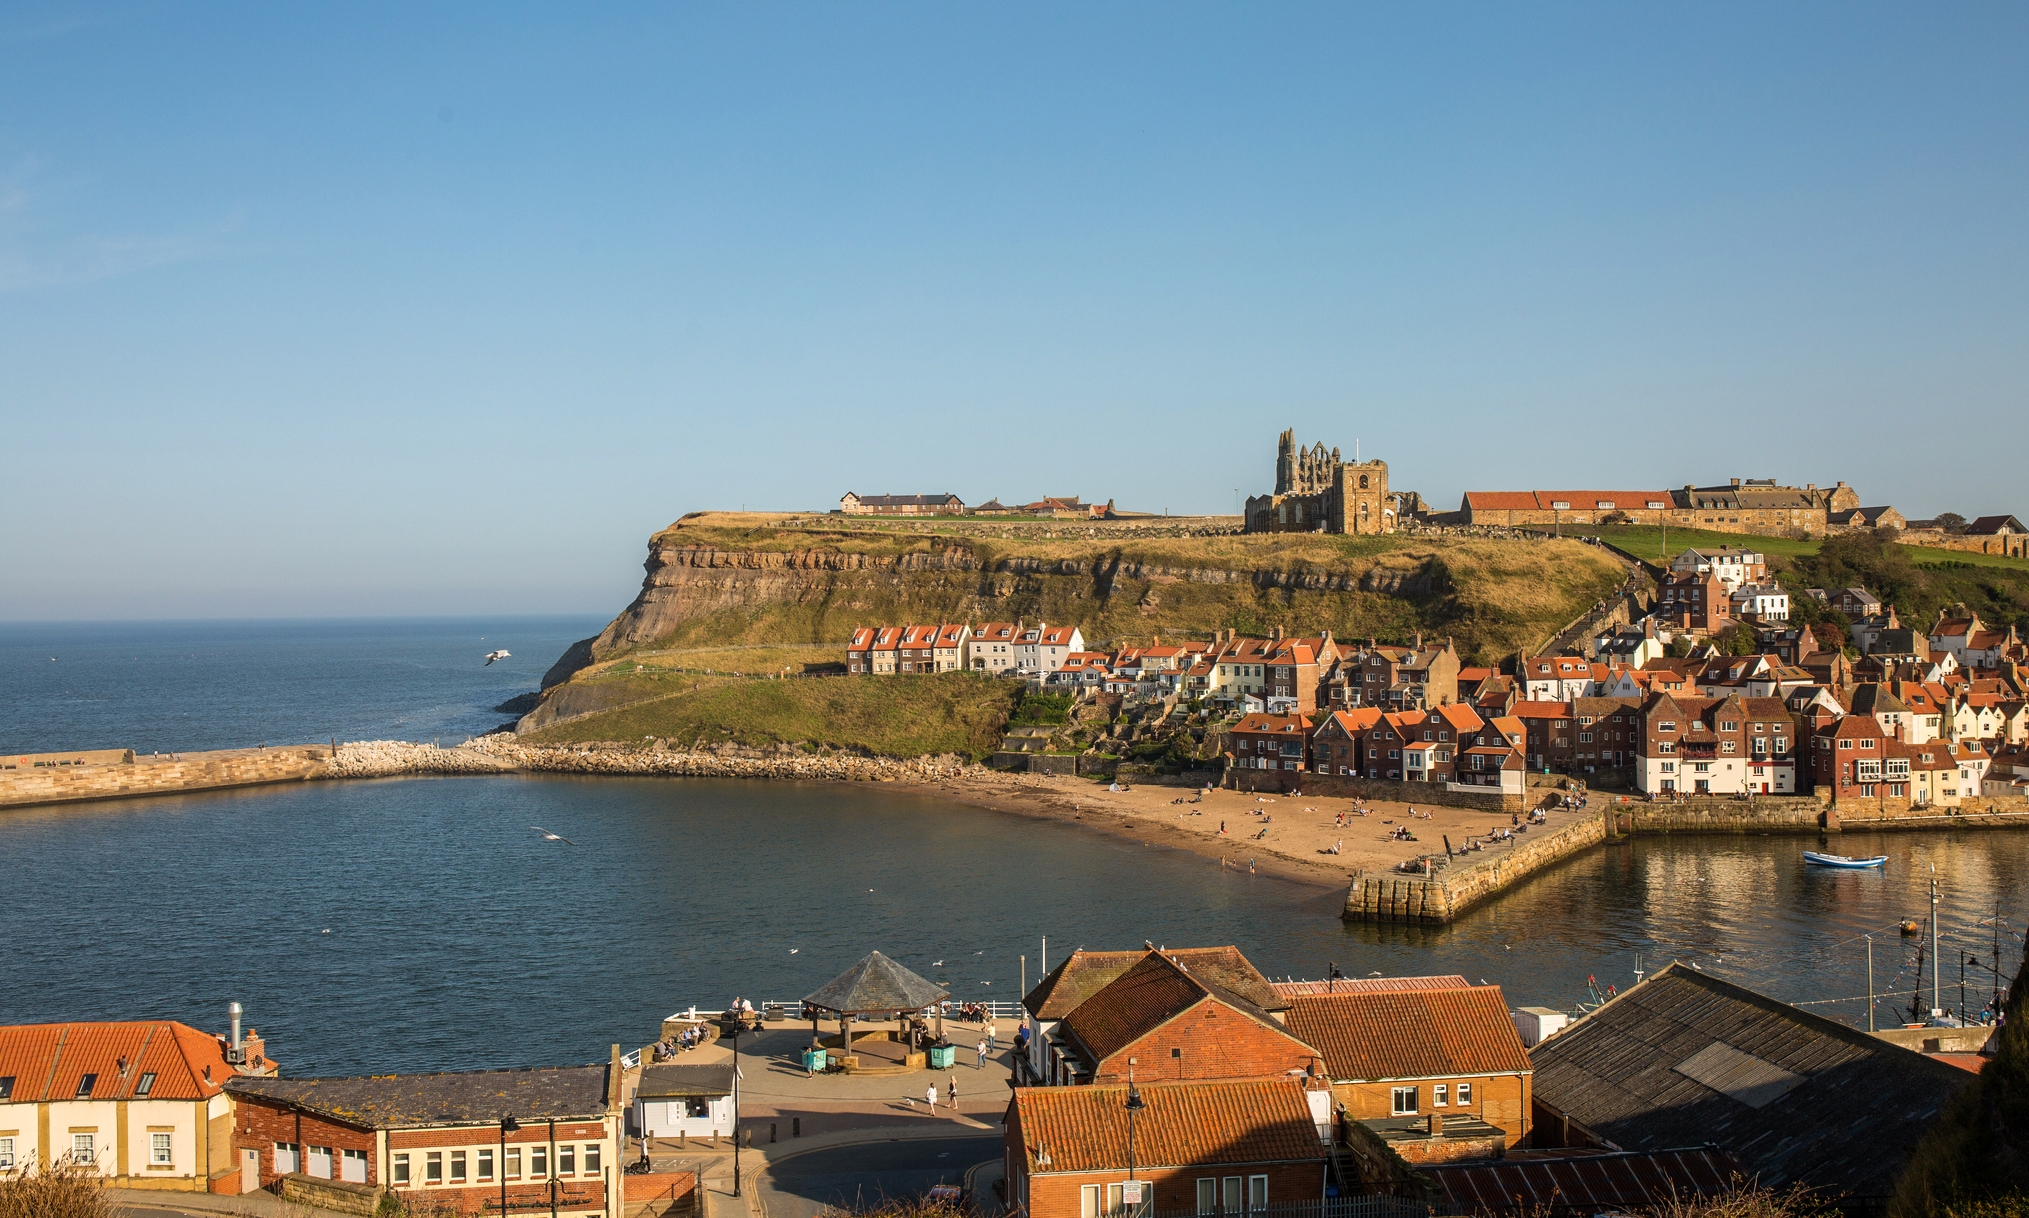 500 Whitby Holiday Cottages Houses And Apartments Airbnb Period stone cottage occupying a corner plot with flexible 3 / 4 bedroom accommodation including annex, commanding fabulous views over open. 500 whitby holiday cottages houses